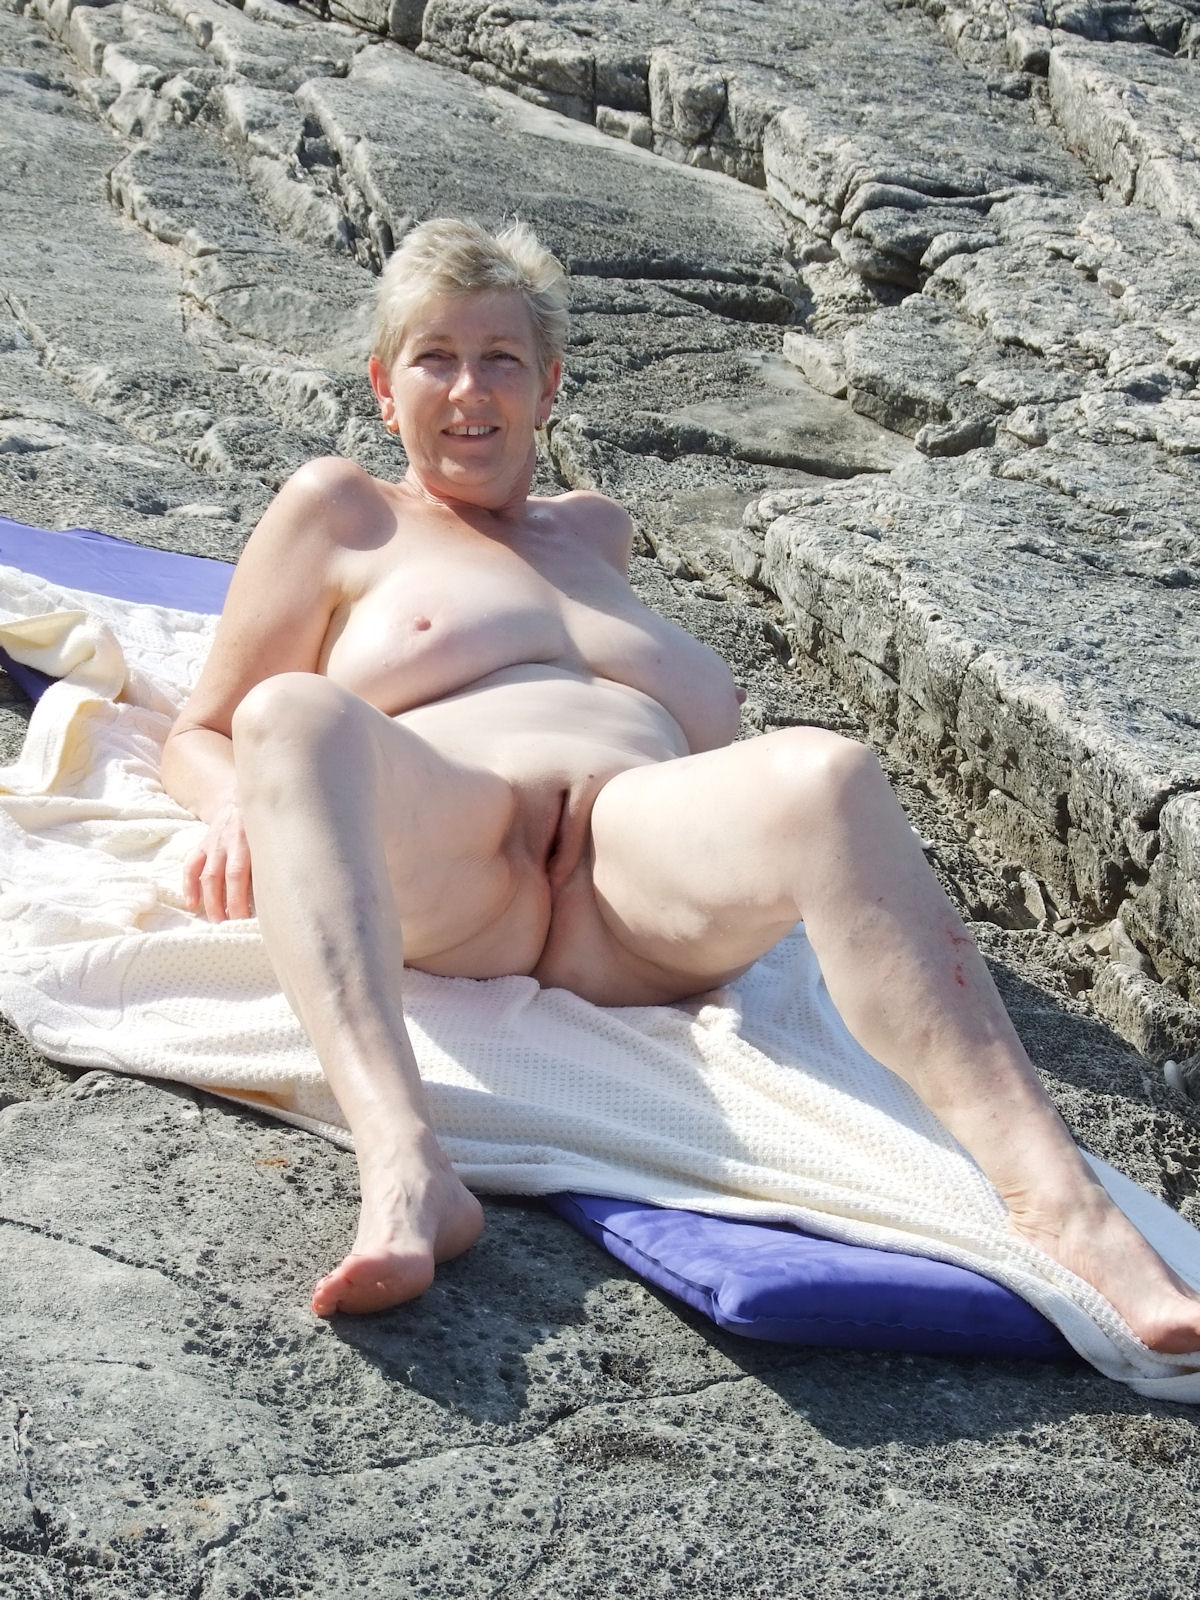 Naked woman who have camel toe